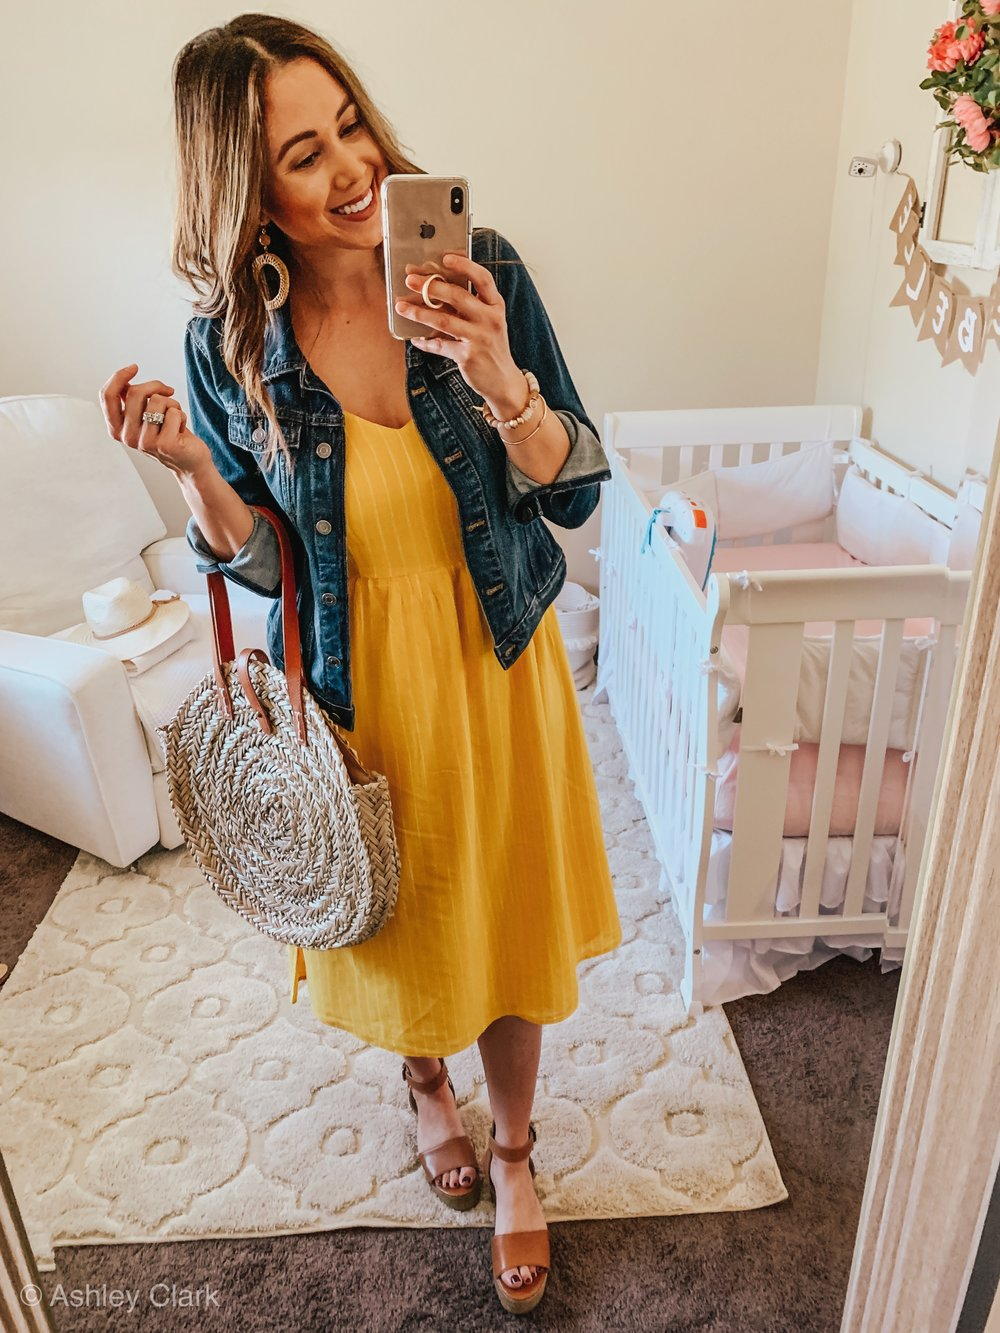 5 was to style a dress for spring: Ashley Clark Blog